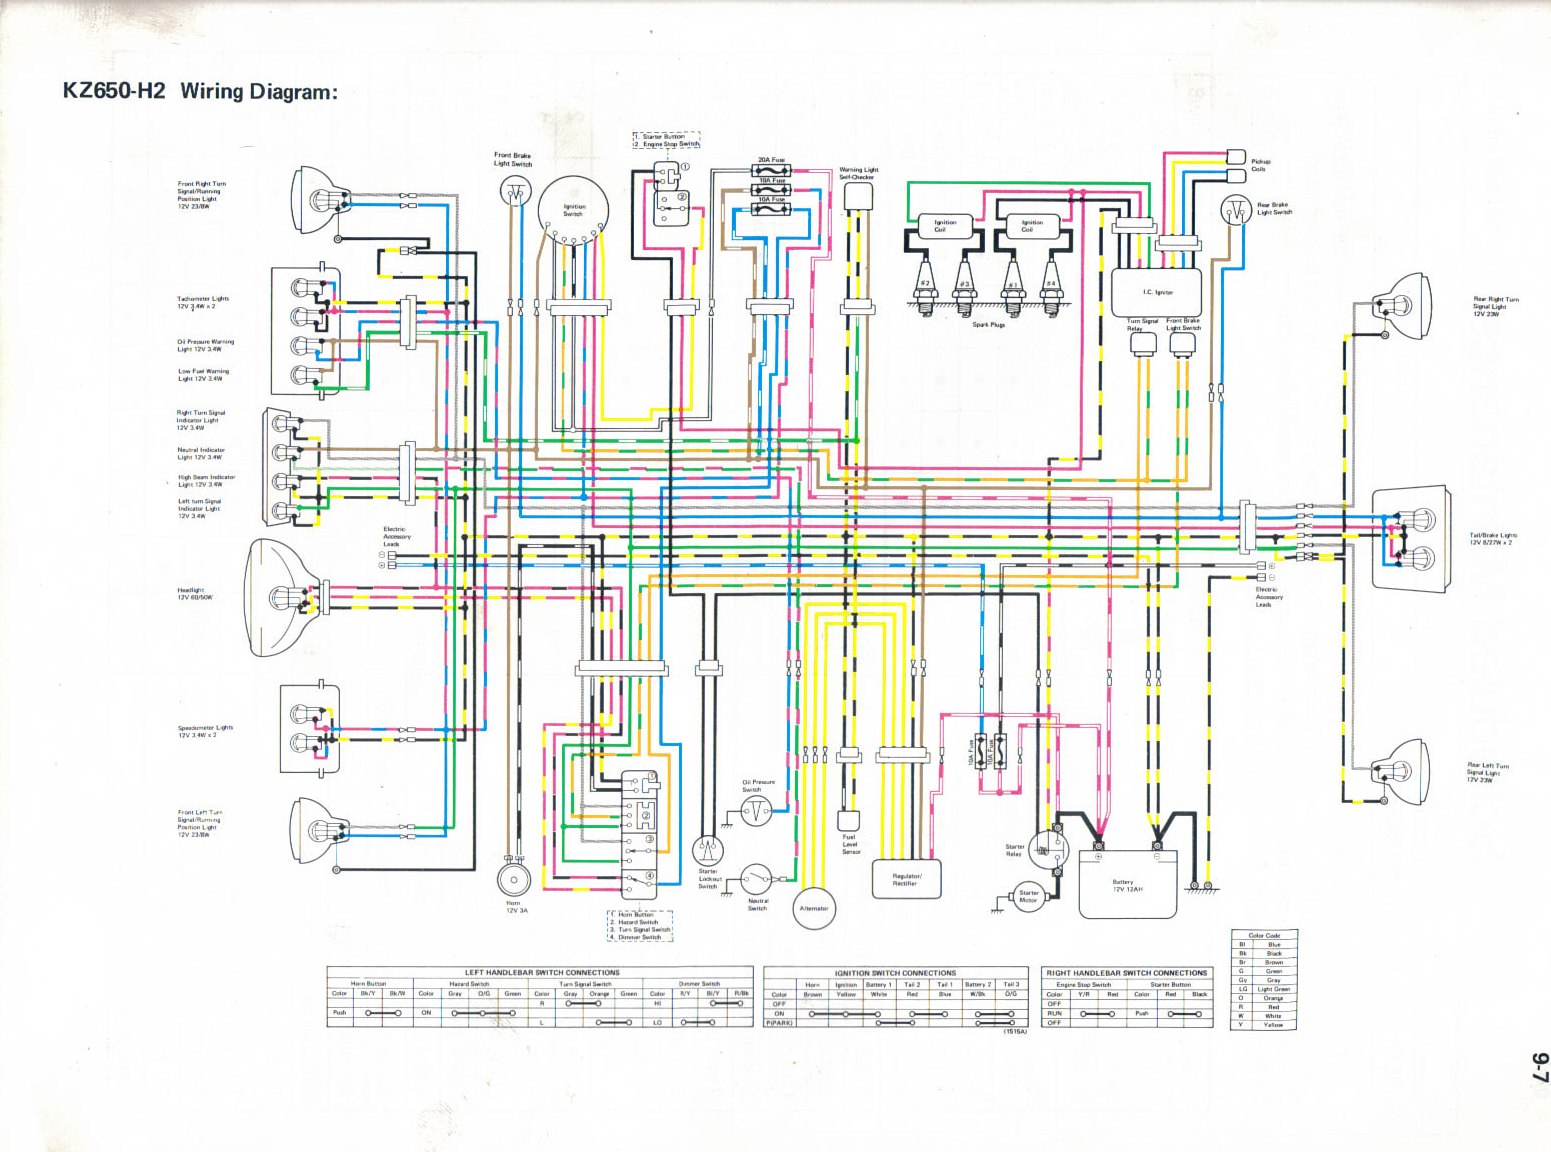 KZ650 H2 kawasaki h2 wiring diagram kawasaki wiring diagrams instruction ex500 wiring diagram at webbmarketing.co